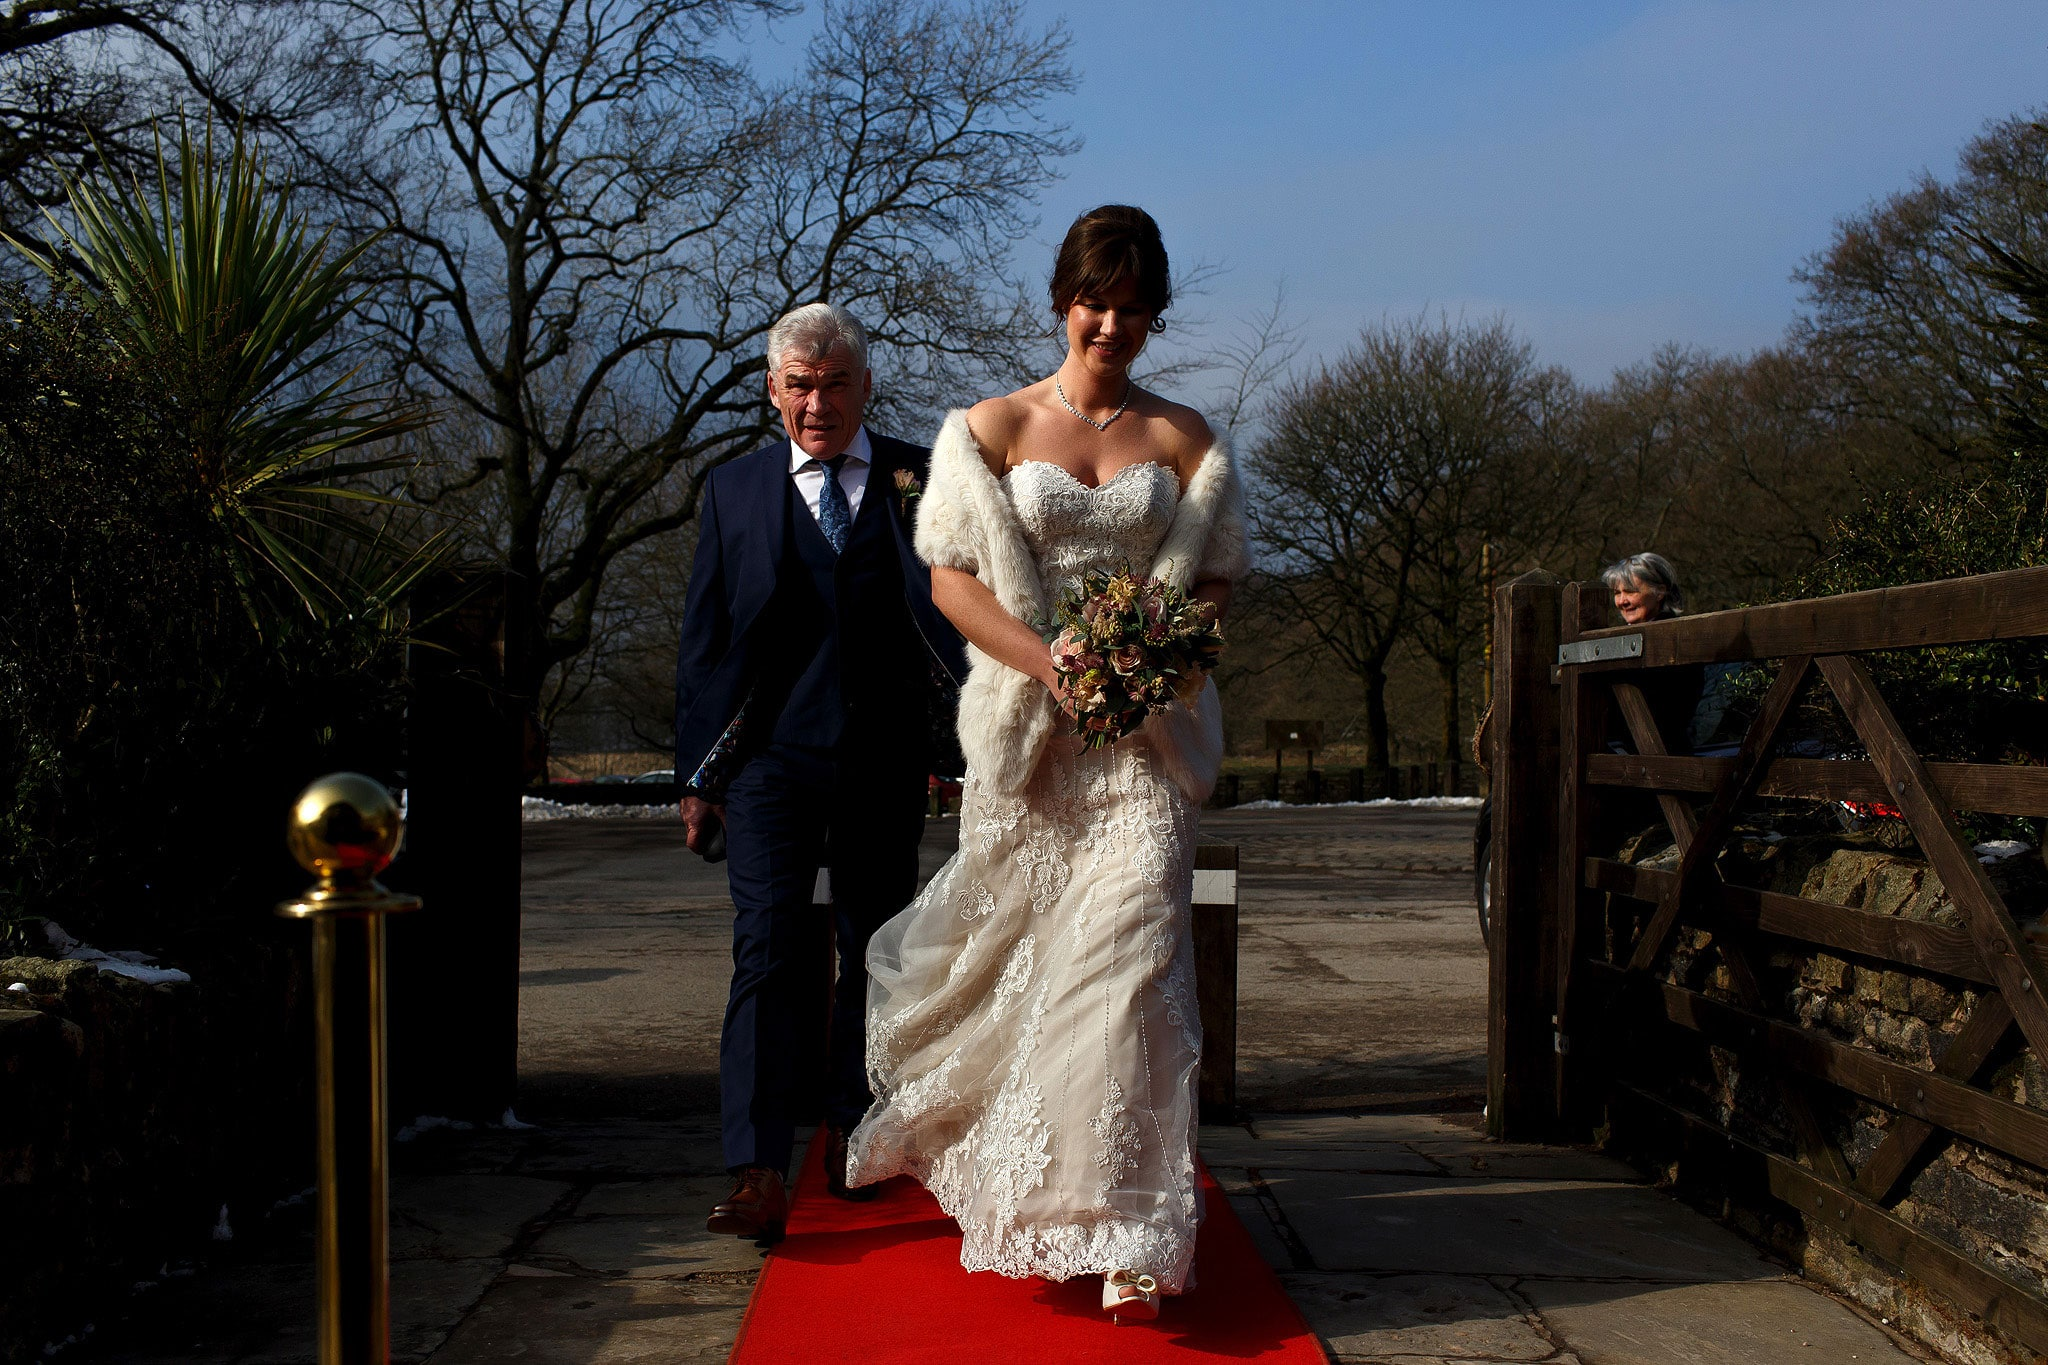 Bride and her father making their entrance into Rivington Hall Barn in winter down the red carpet